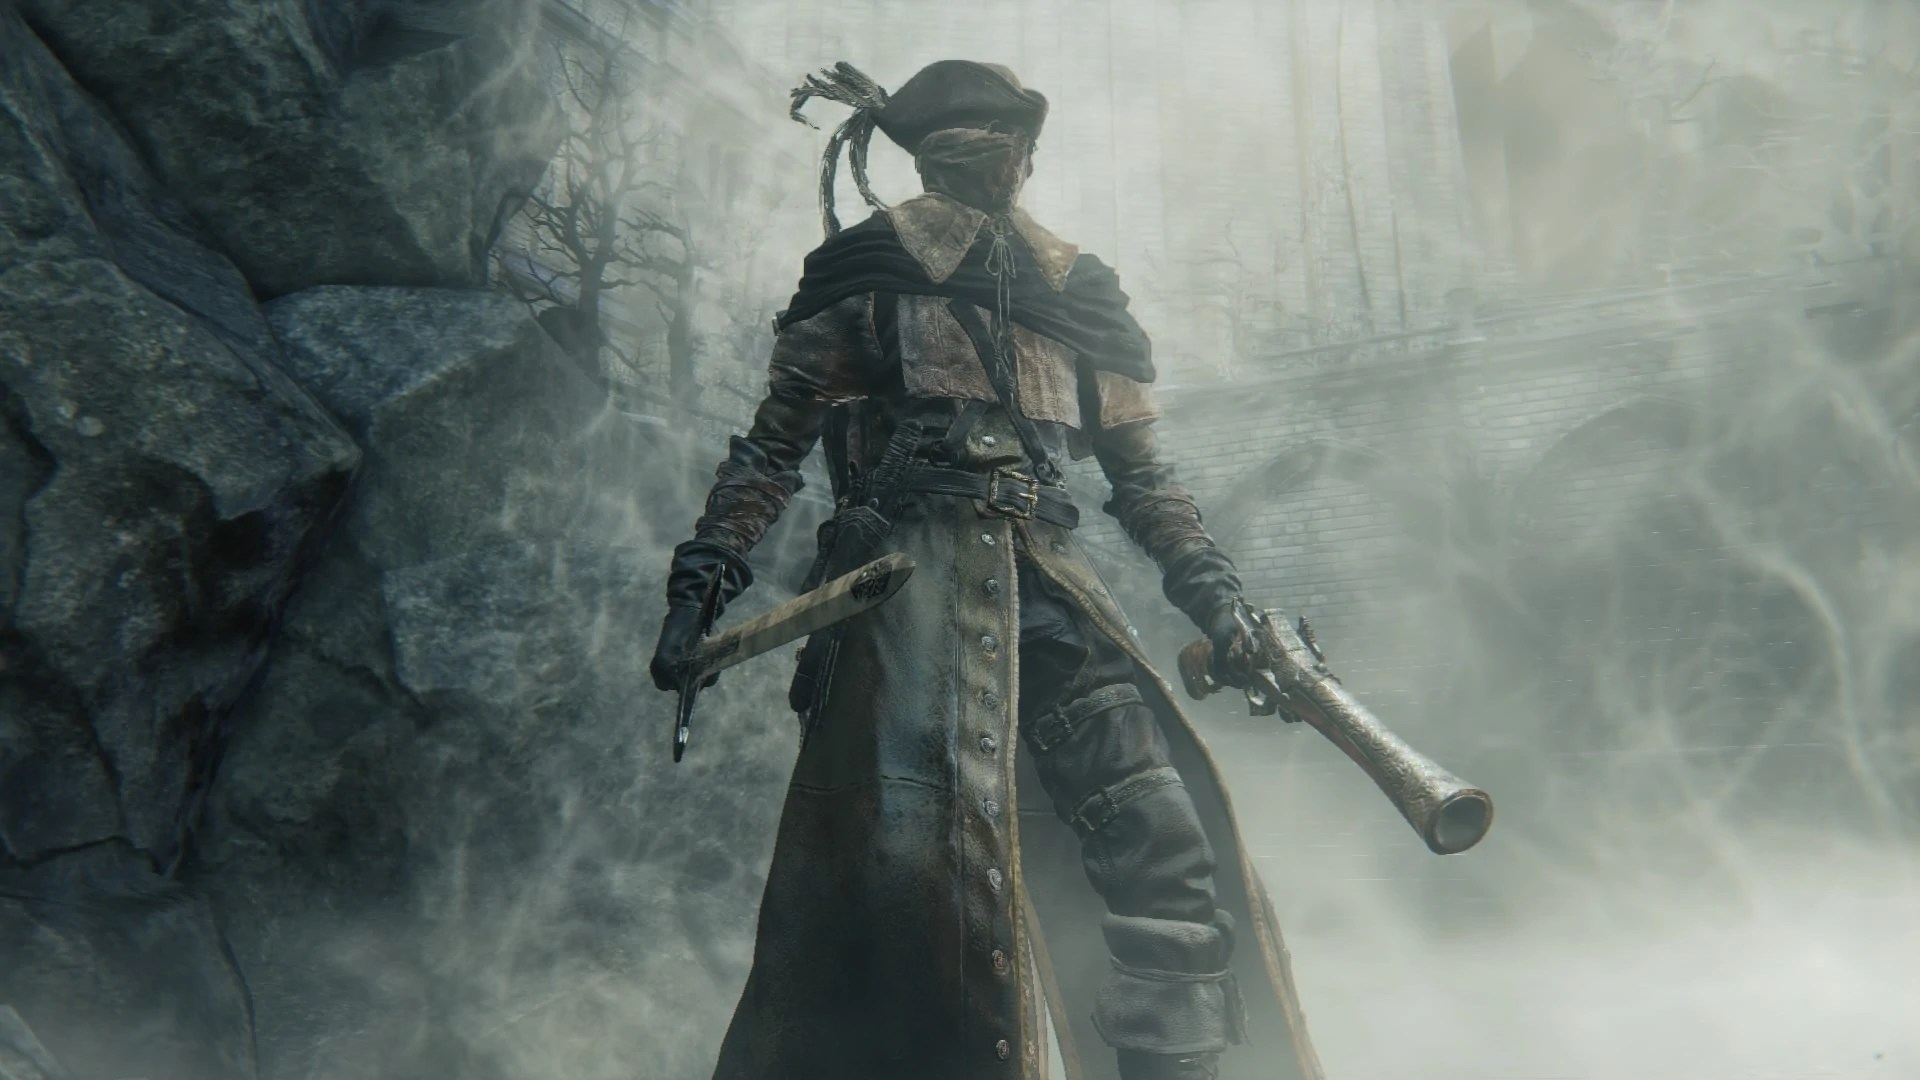 20 Bloodborne Attire Sets Pictures And Ideas On Meta Networks